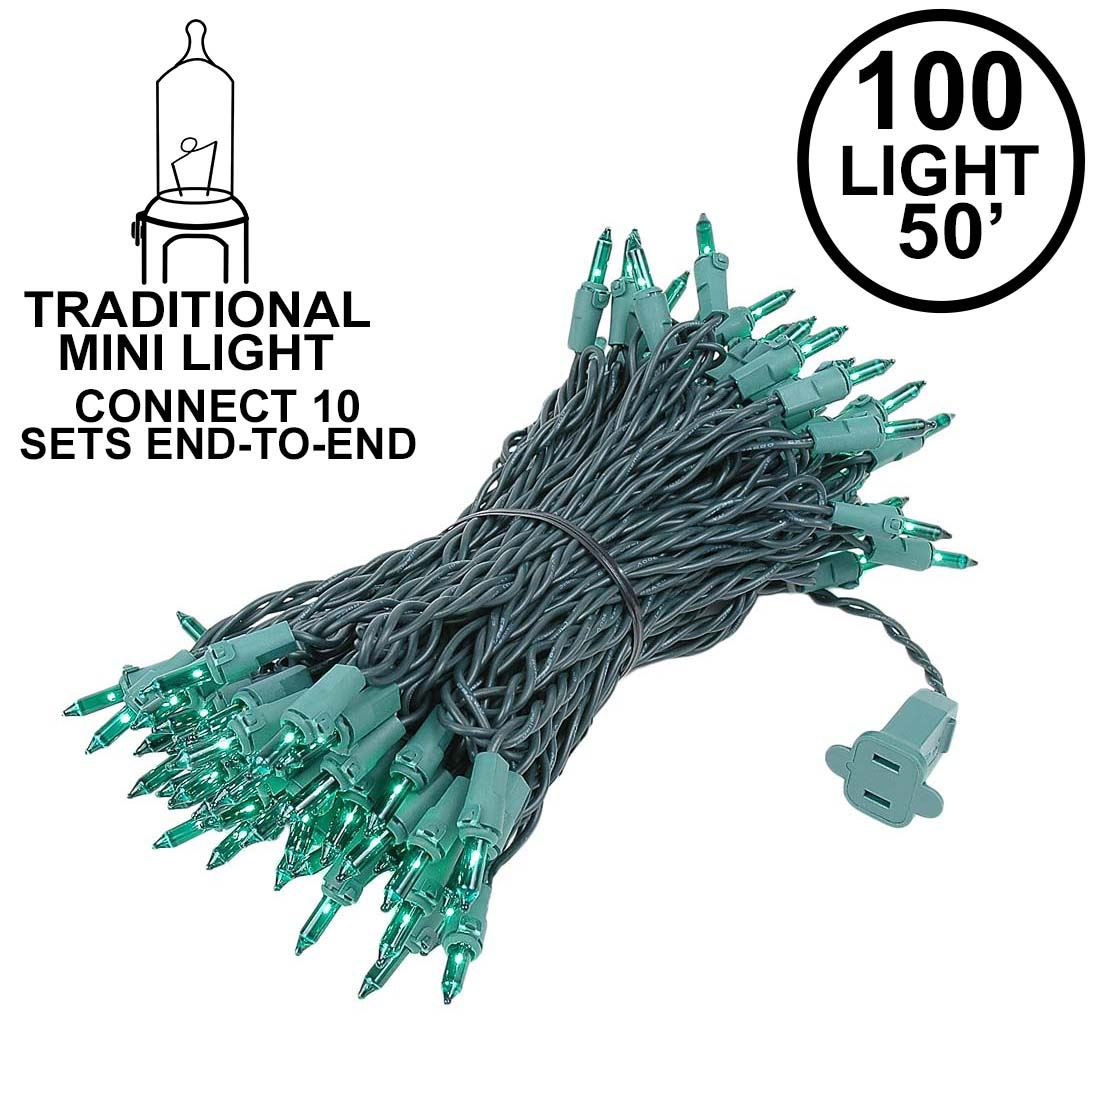 Picture of Connect 10 Green Christmas Mini Lights 100 Light 50 Feet Long**ON SALE**